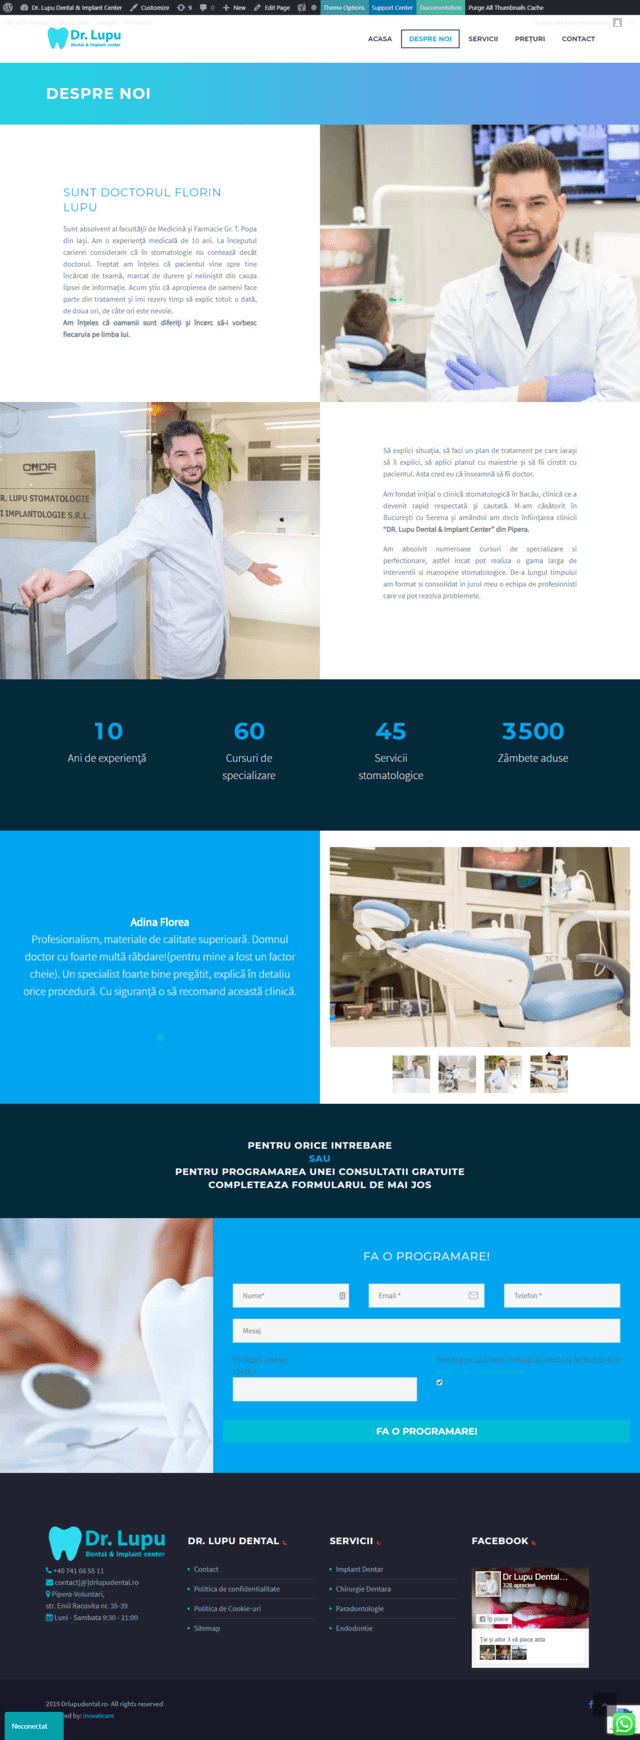 Inovateam web design - drlupudental (4)